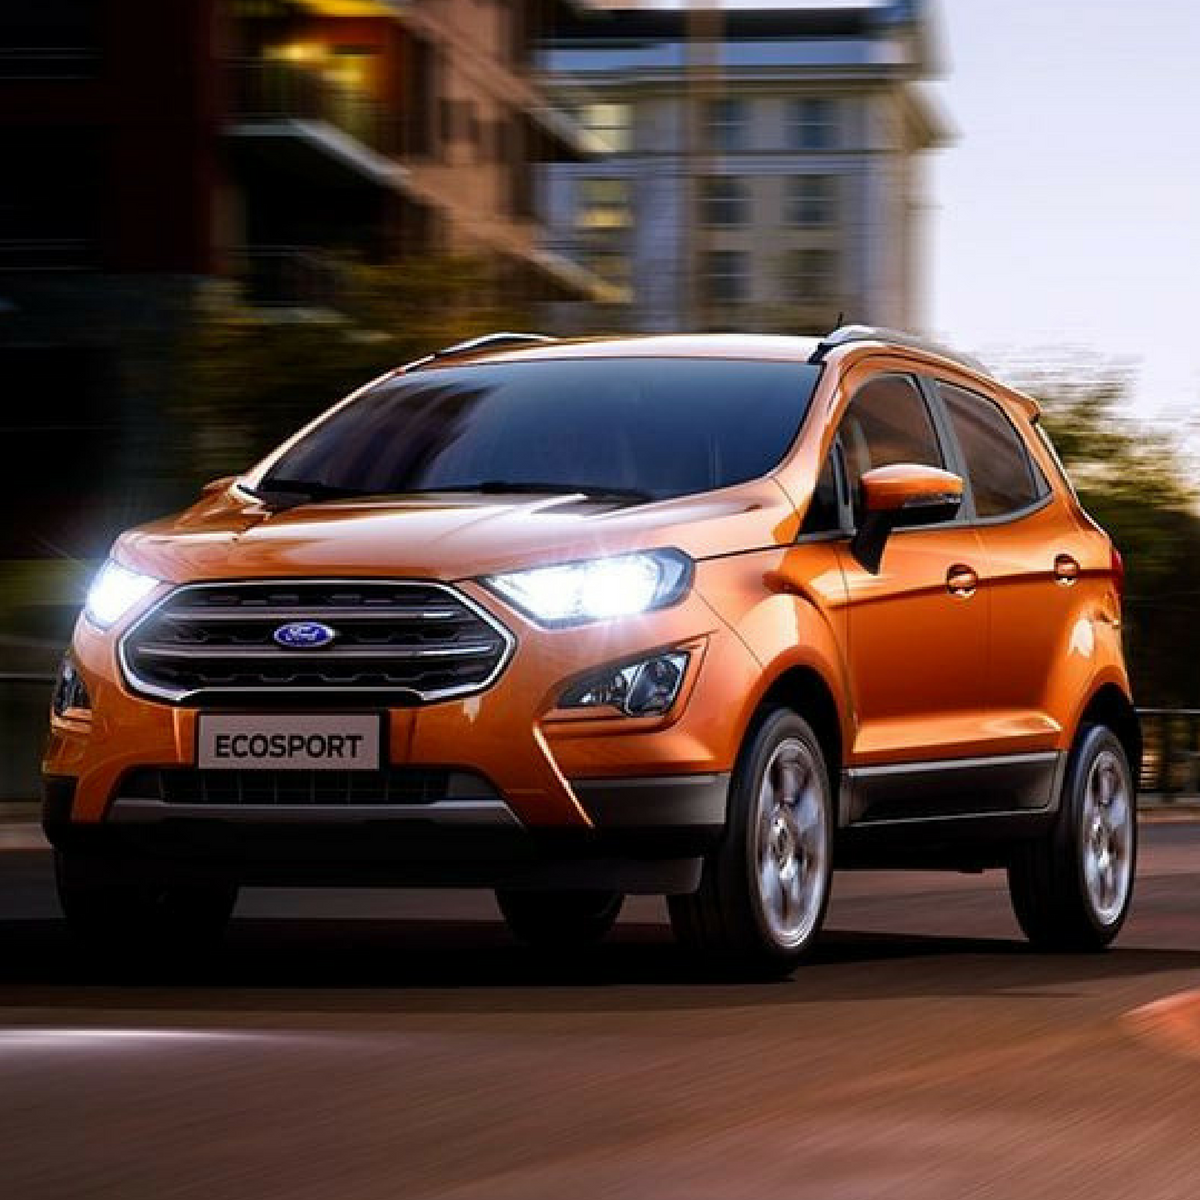 Sportier Ford Ecosport S Sunproof To Introduce This Month Ford Ecosport Car Car Showroom